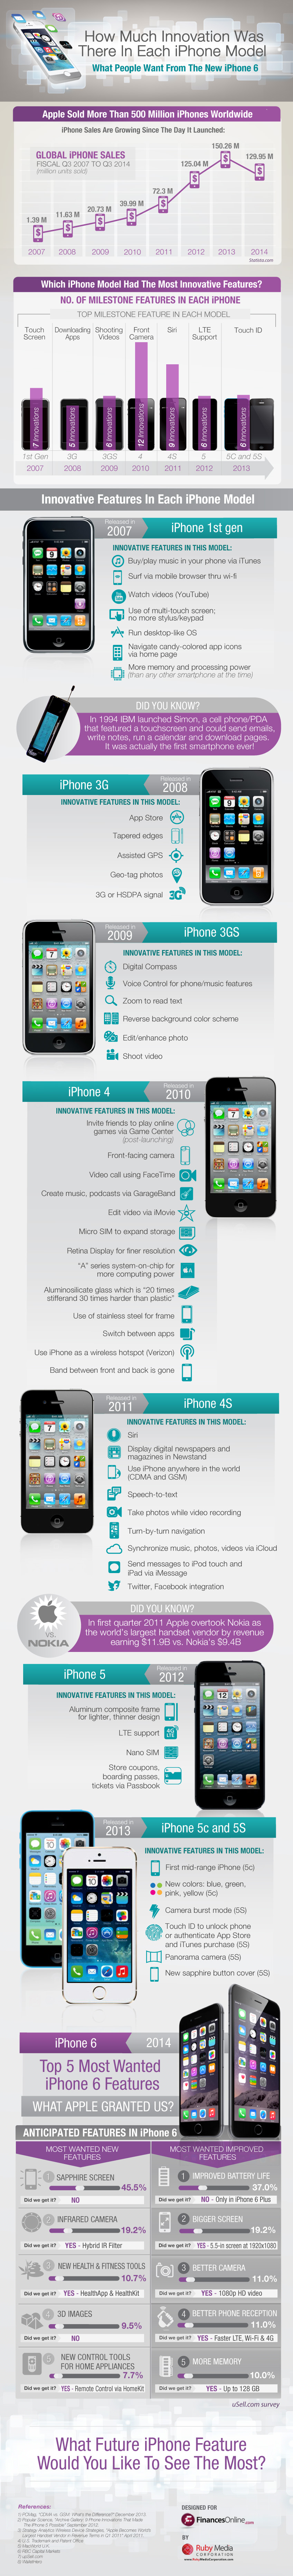 new iphone 6 features